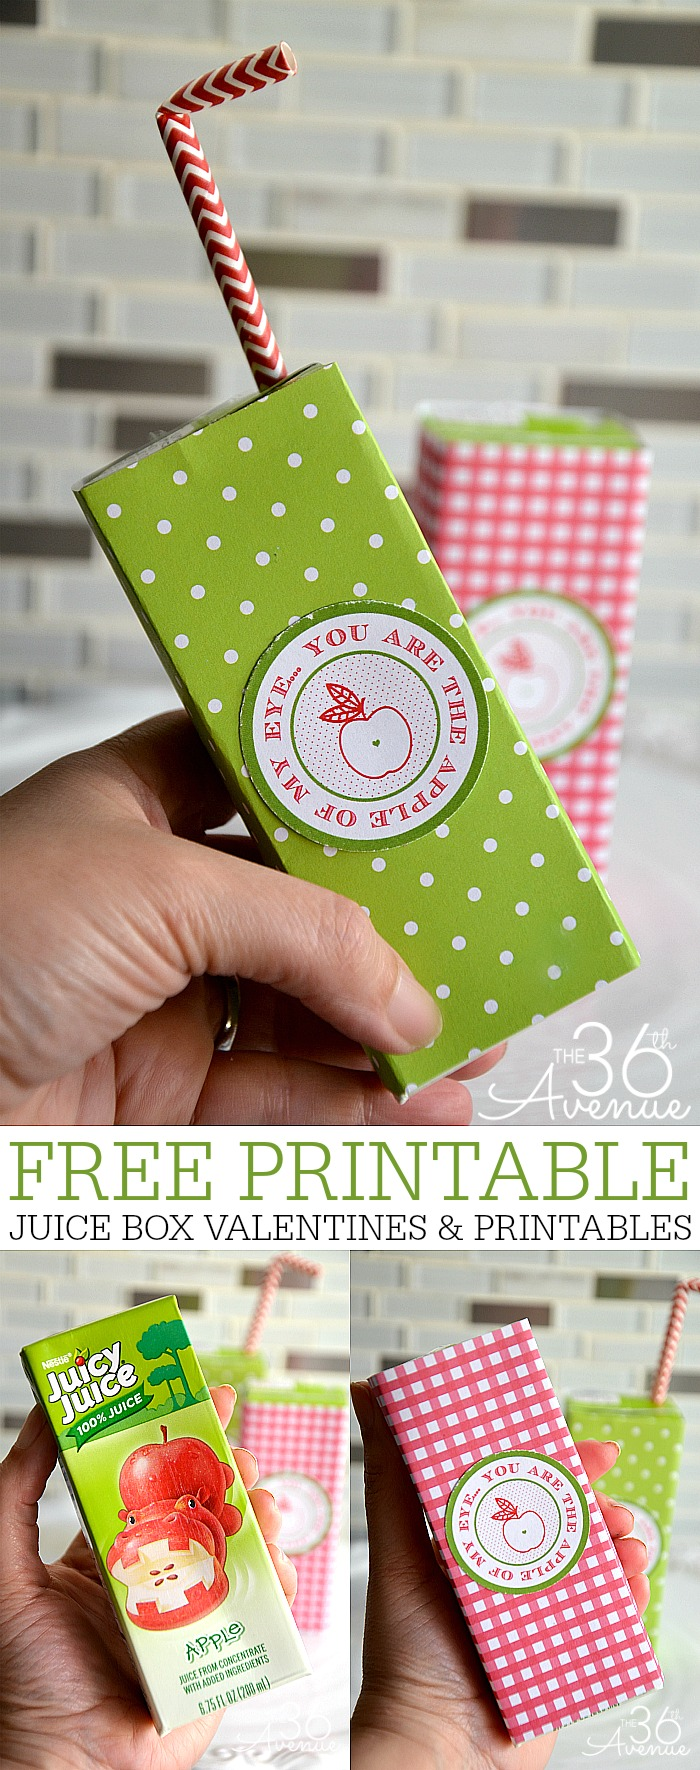 Valentines and Free Printables : These super cute non-candy valentines are perfect for classmates and class parties!